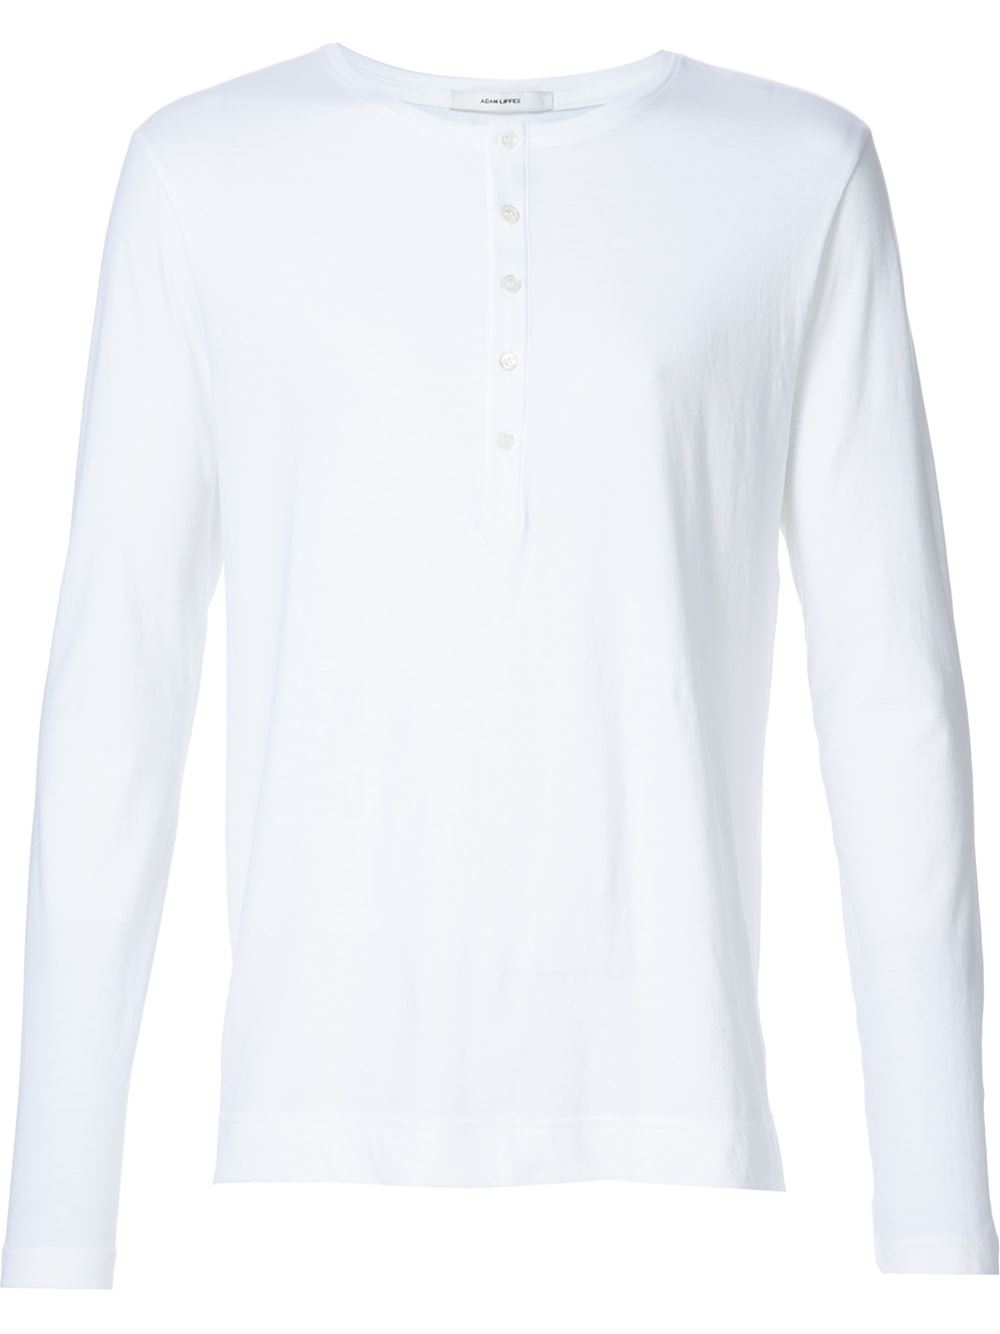 Adam lippes long sleeve henley t shirt in white for men lyst for Adam lippes t shirt